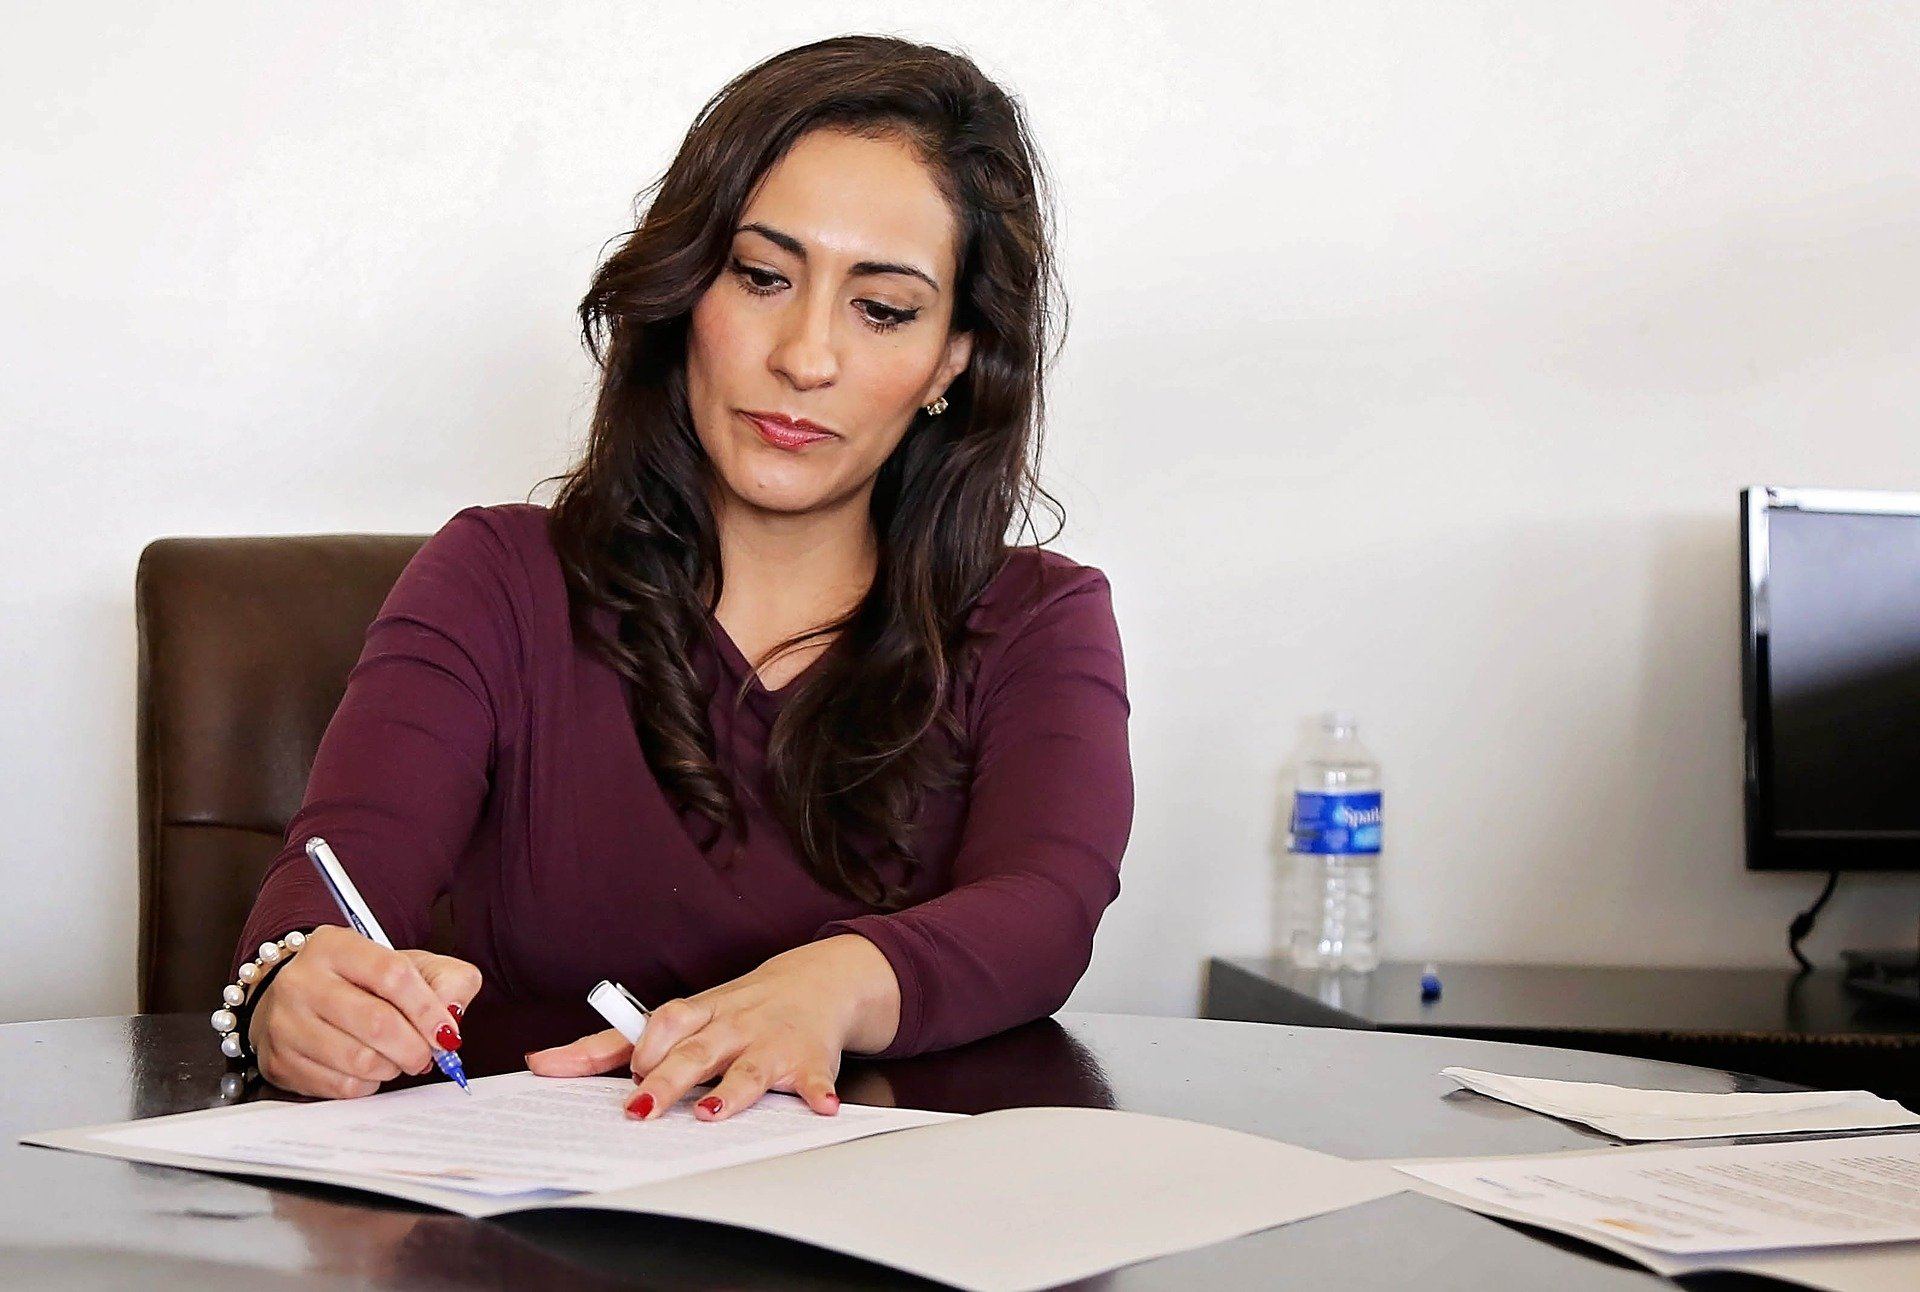 Be it finance or politics, it's high time we sent more women in to do a 'man's' job